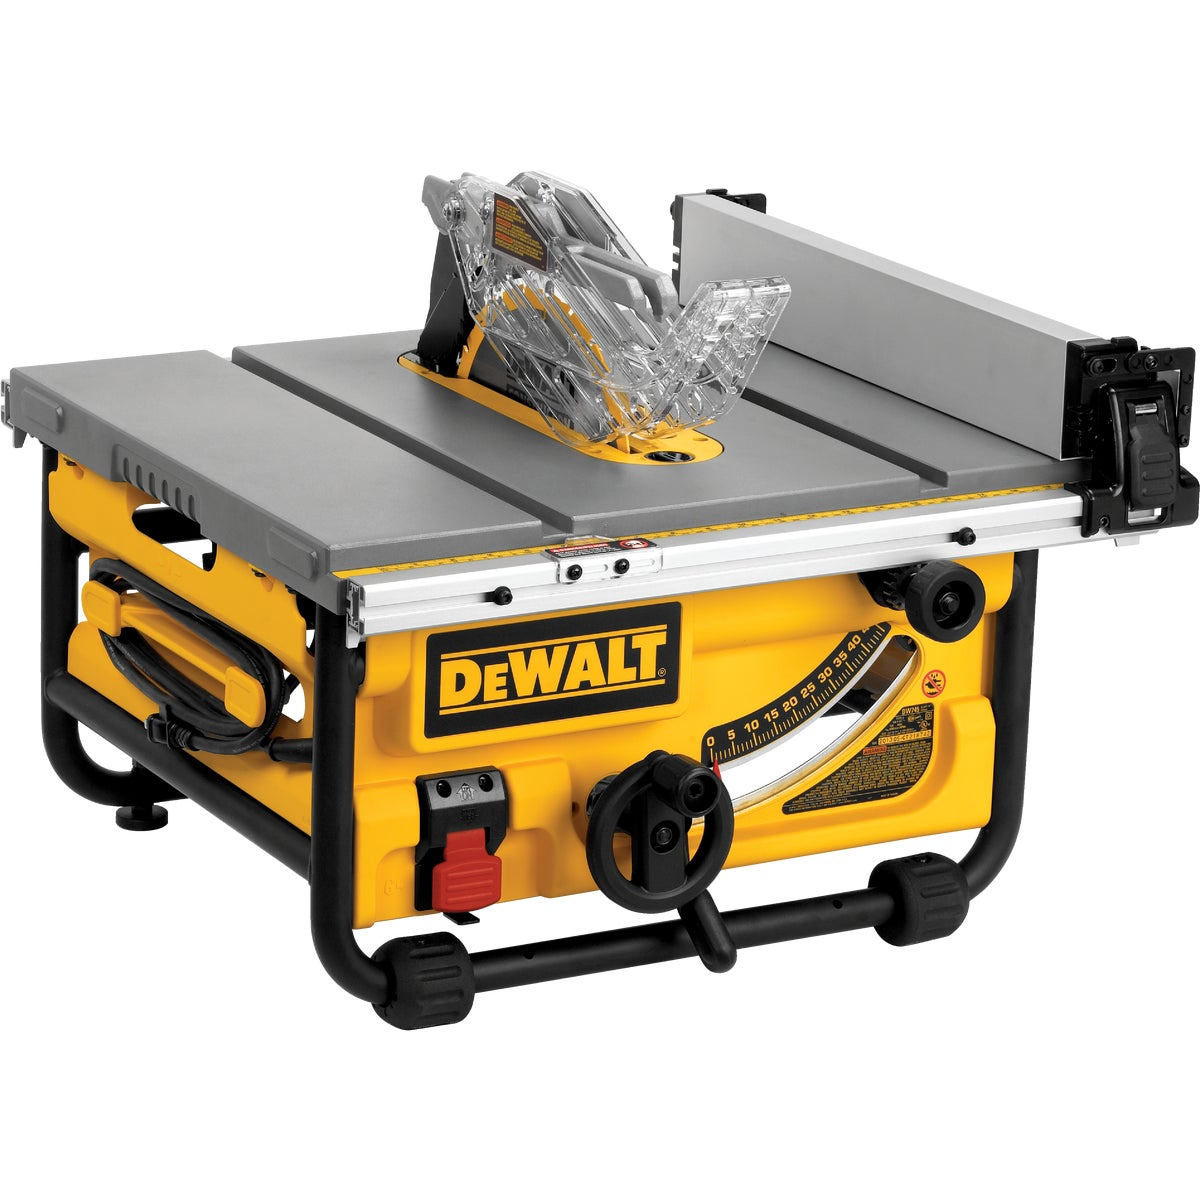 "10"" COMPACT JOB SITE SAW - DWE7480 by DeWalt"